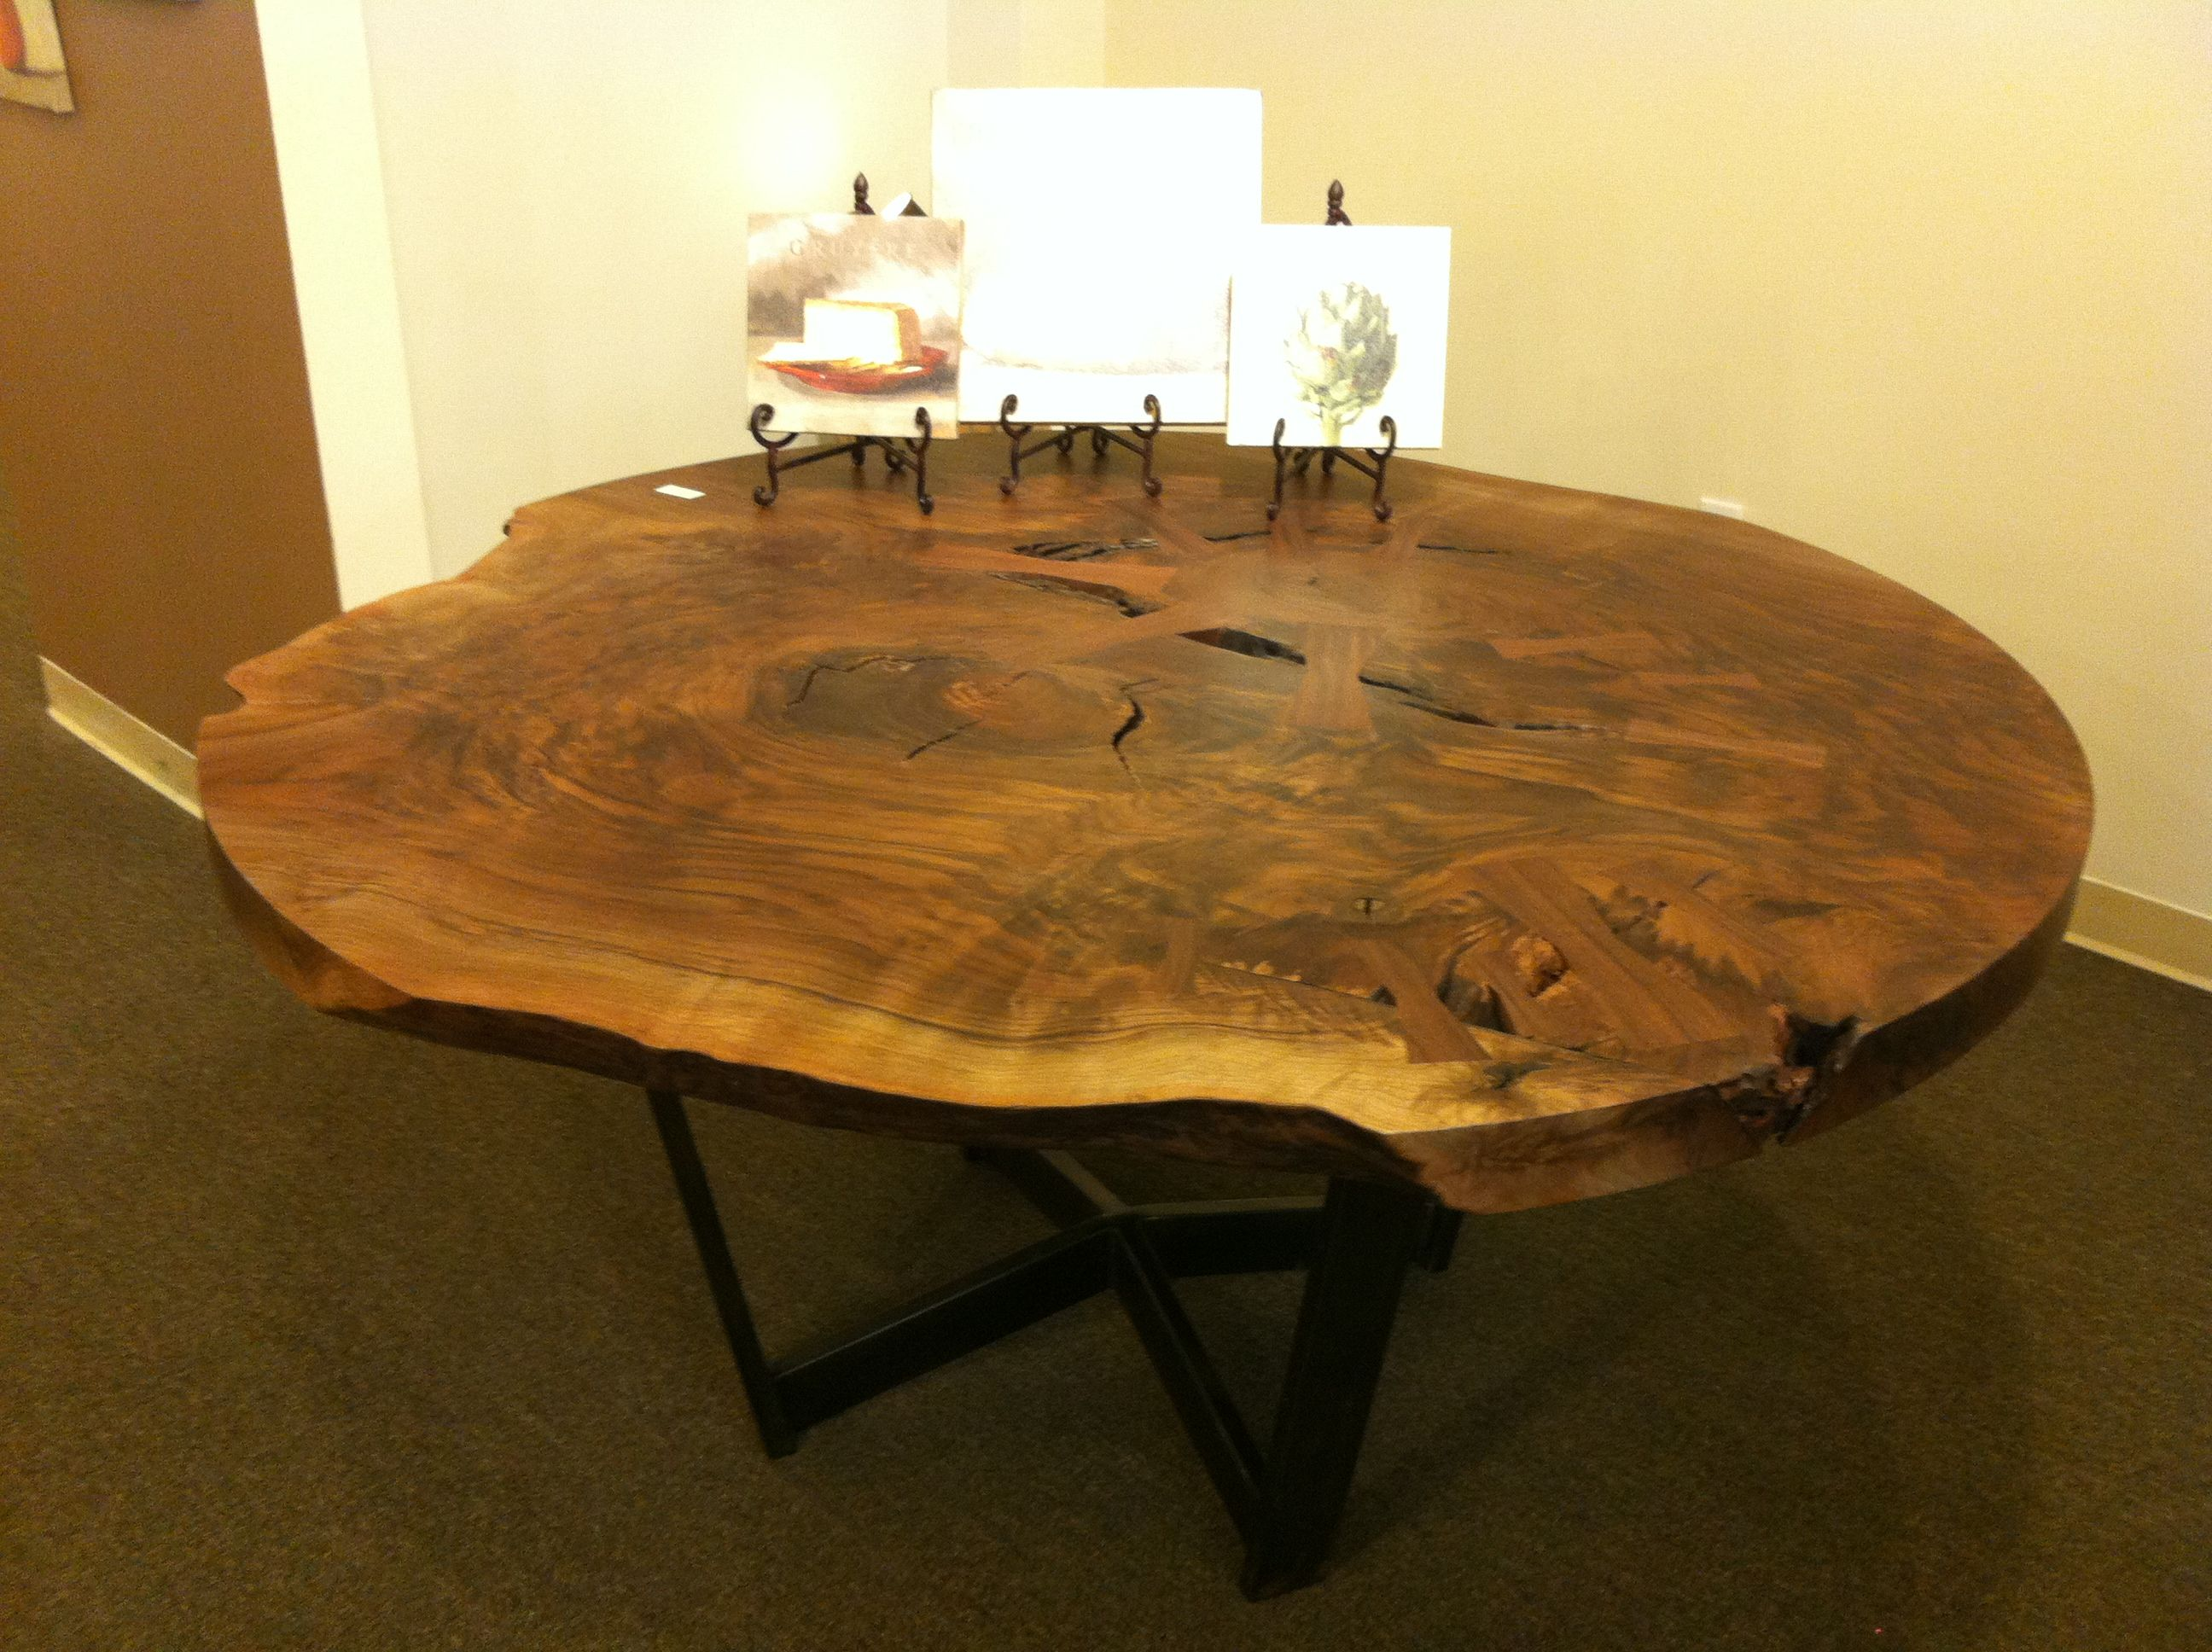 This Is A Stunning Black Walnut And Gun Metal Steel Table Made From